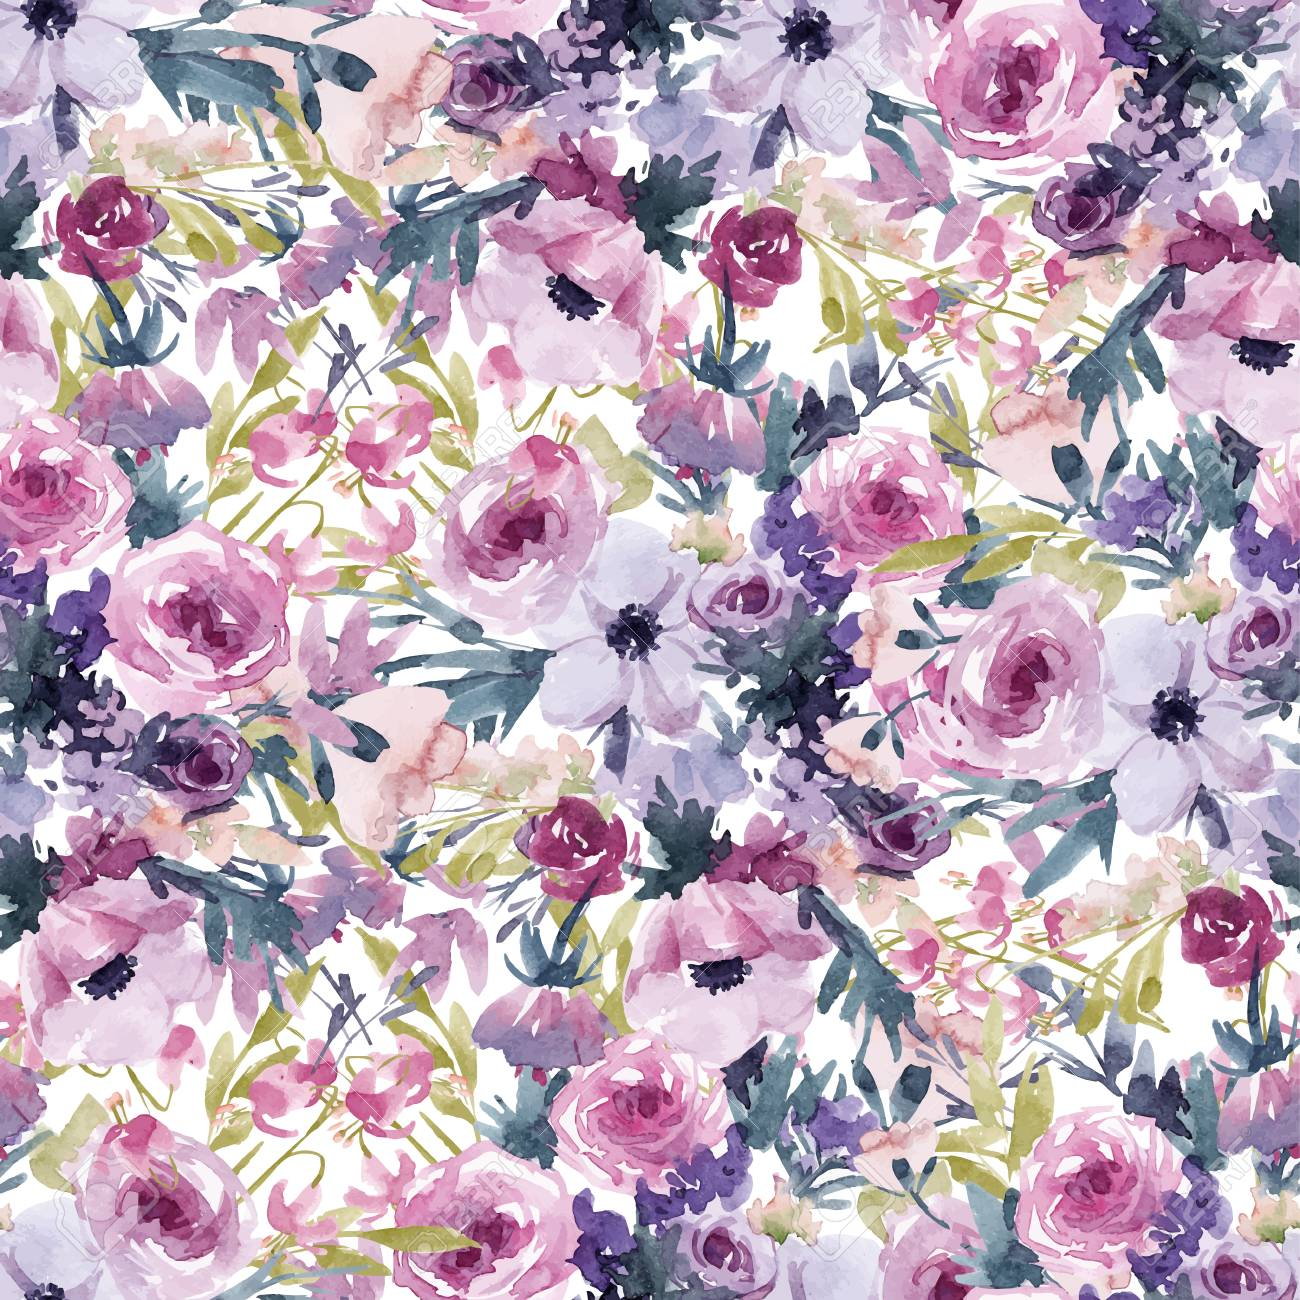 Watercolor spring floral pattern - 101338735